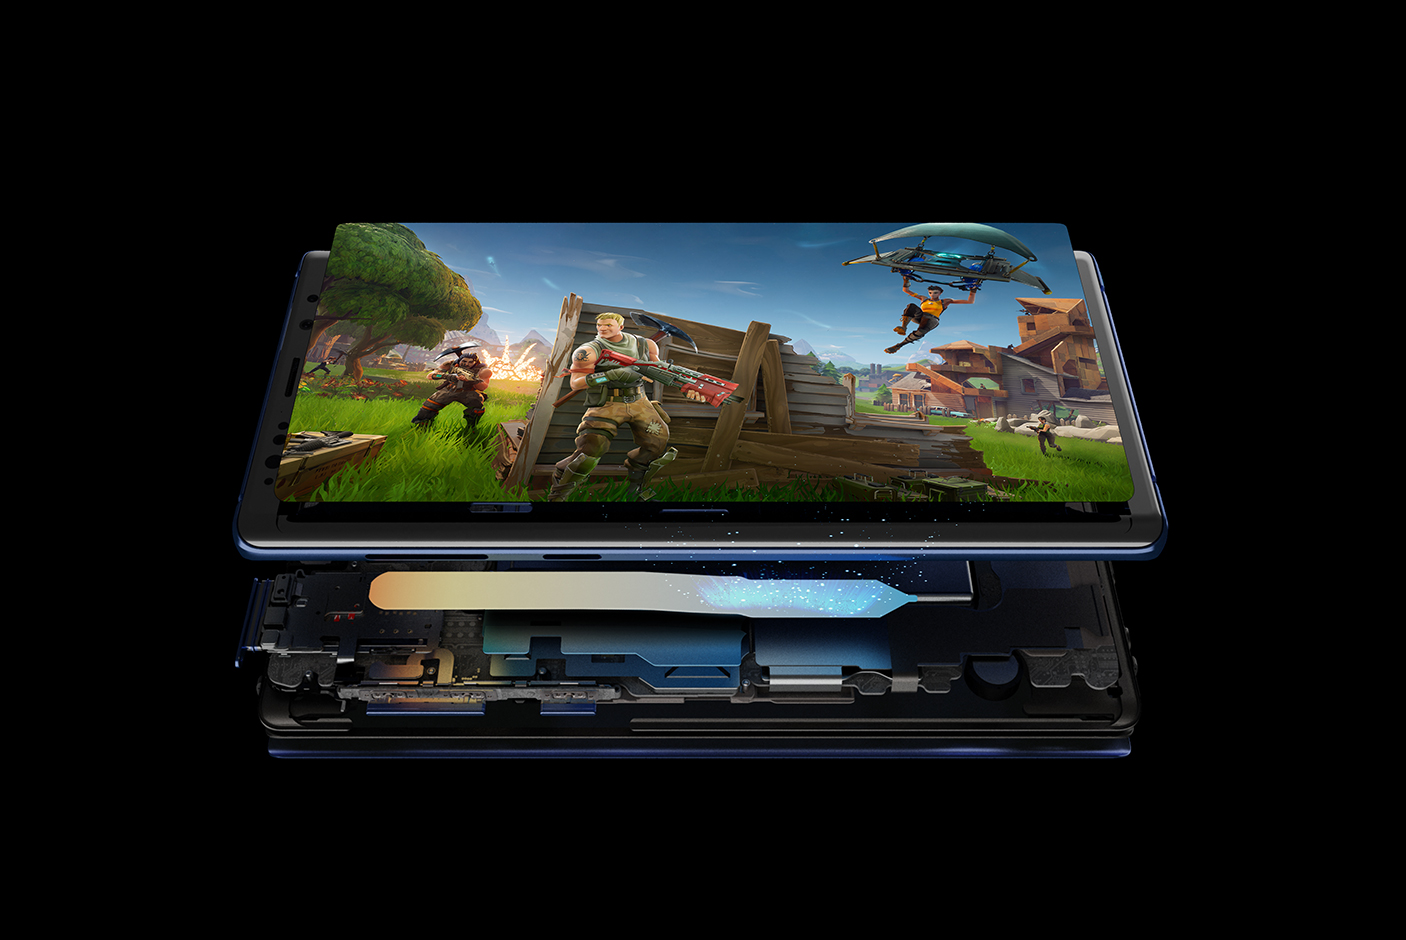 purchasers of the new samsung note 9 will get access to the new galaxy outfit - how to play fortnite on note 9